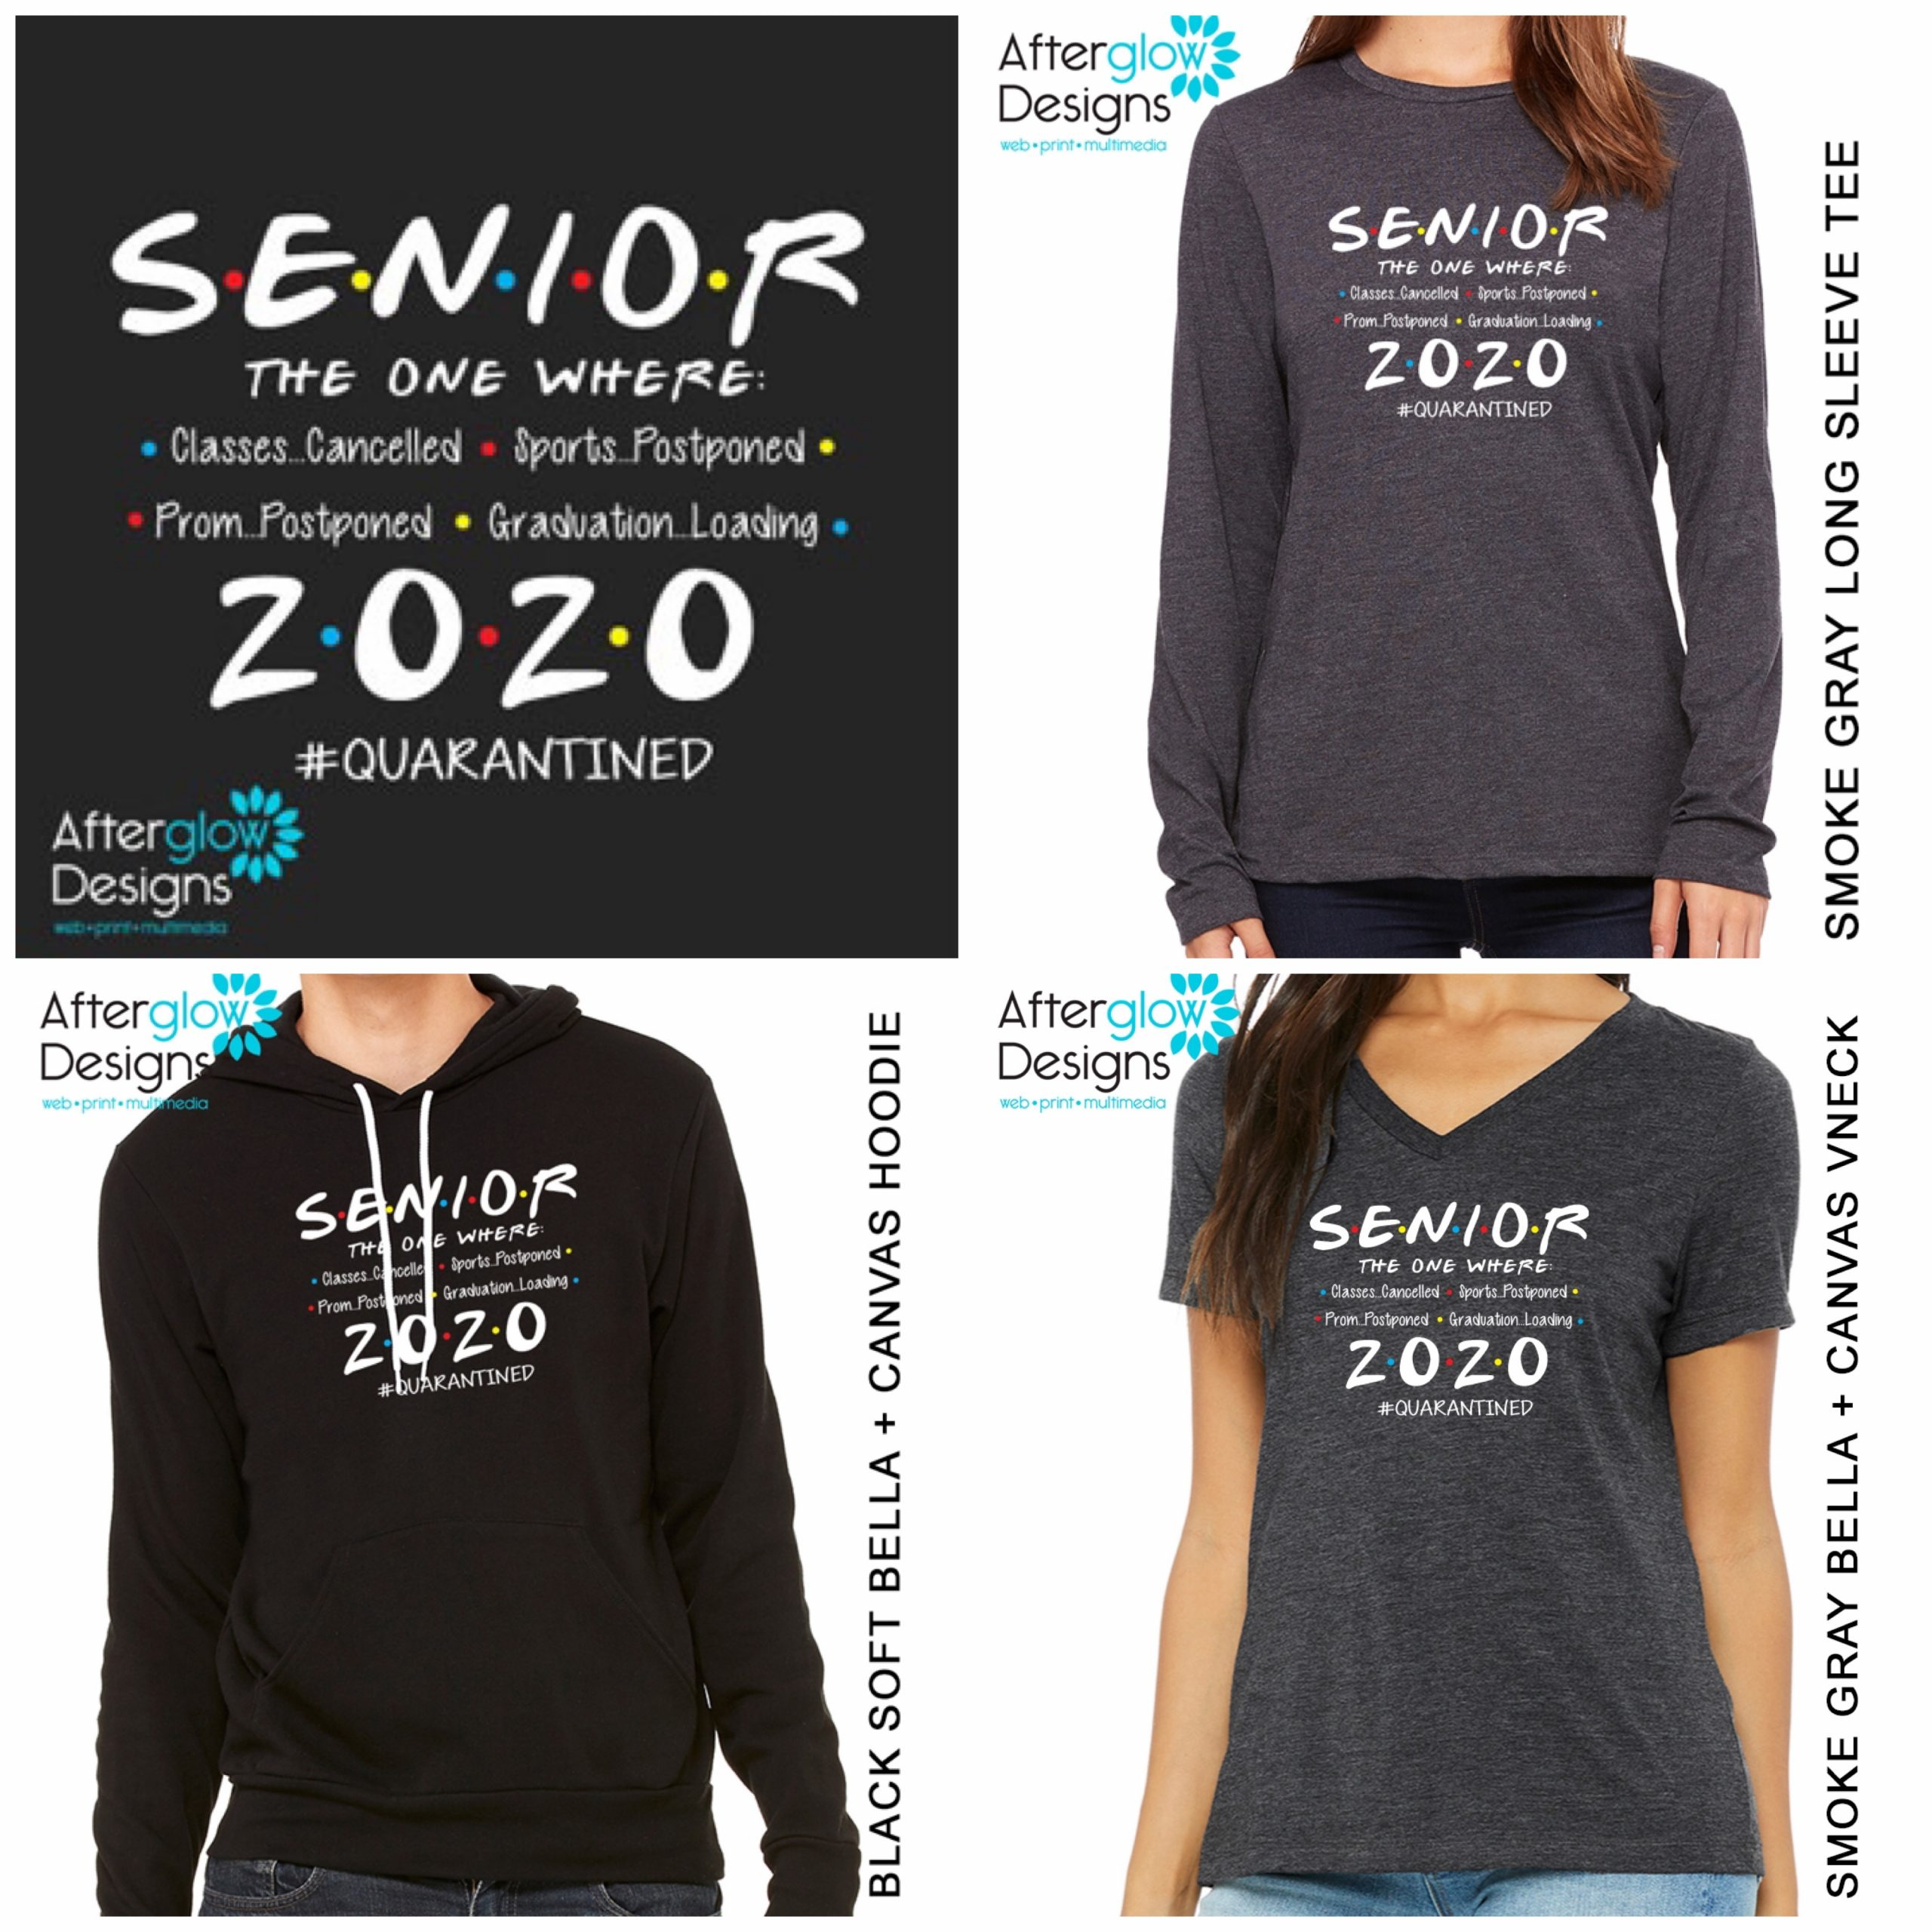 """""""Senior 2020 - The One Where"""" on Tees Collage"""